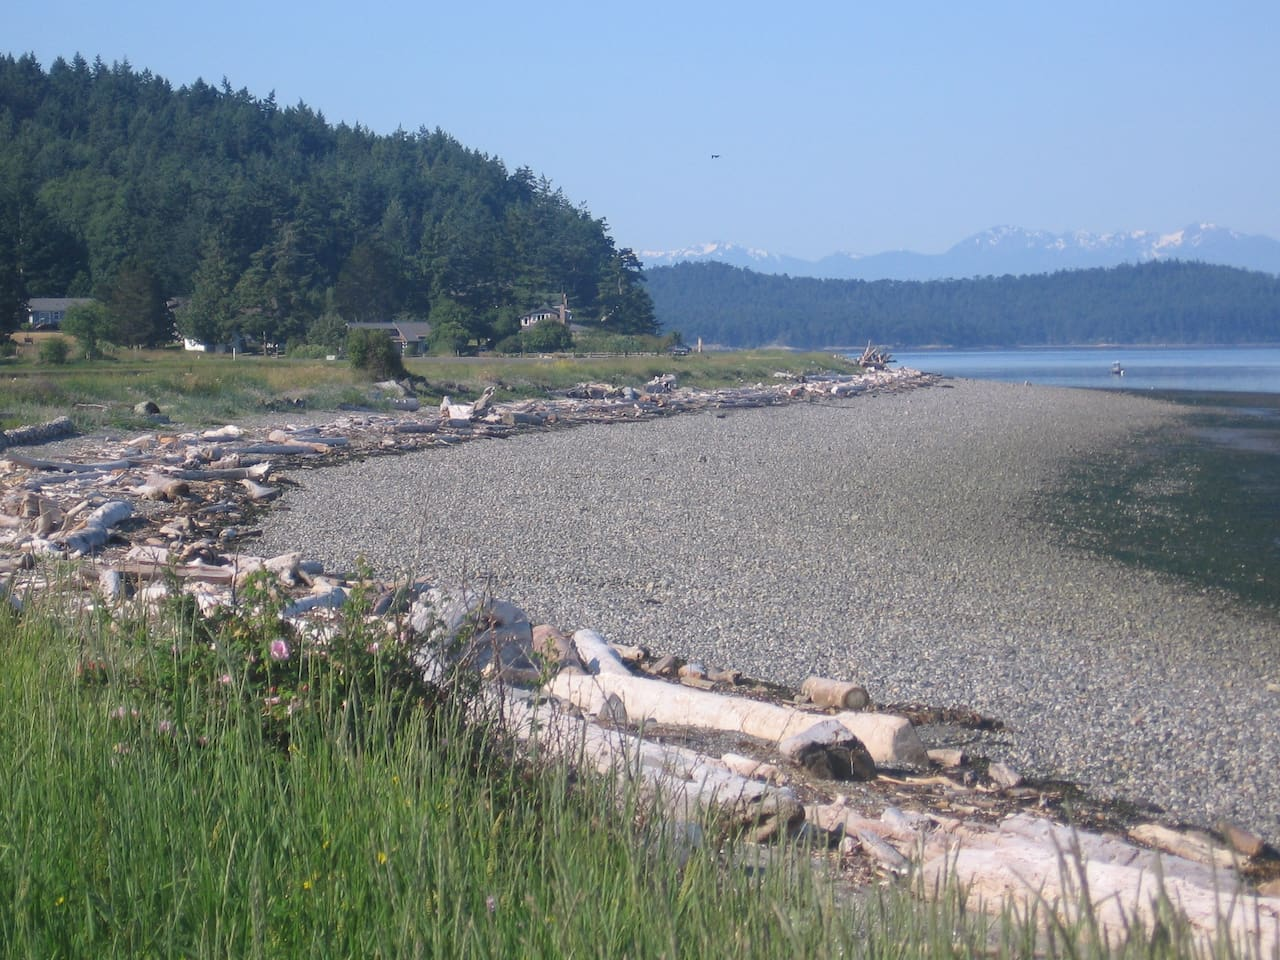 Beach near cottage - looking south to Olympic Mts